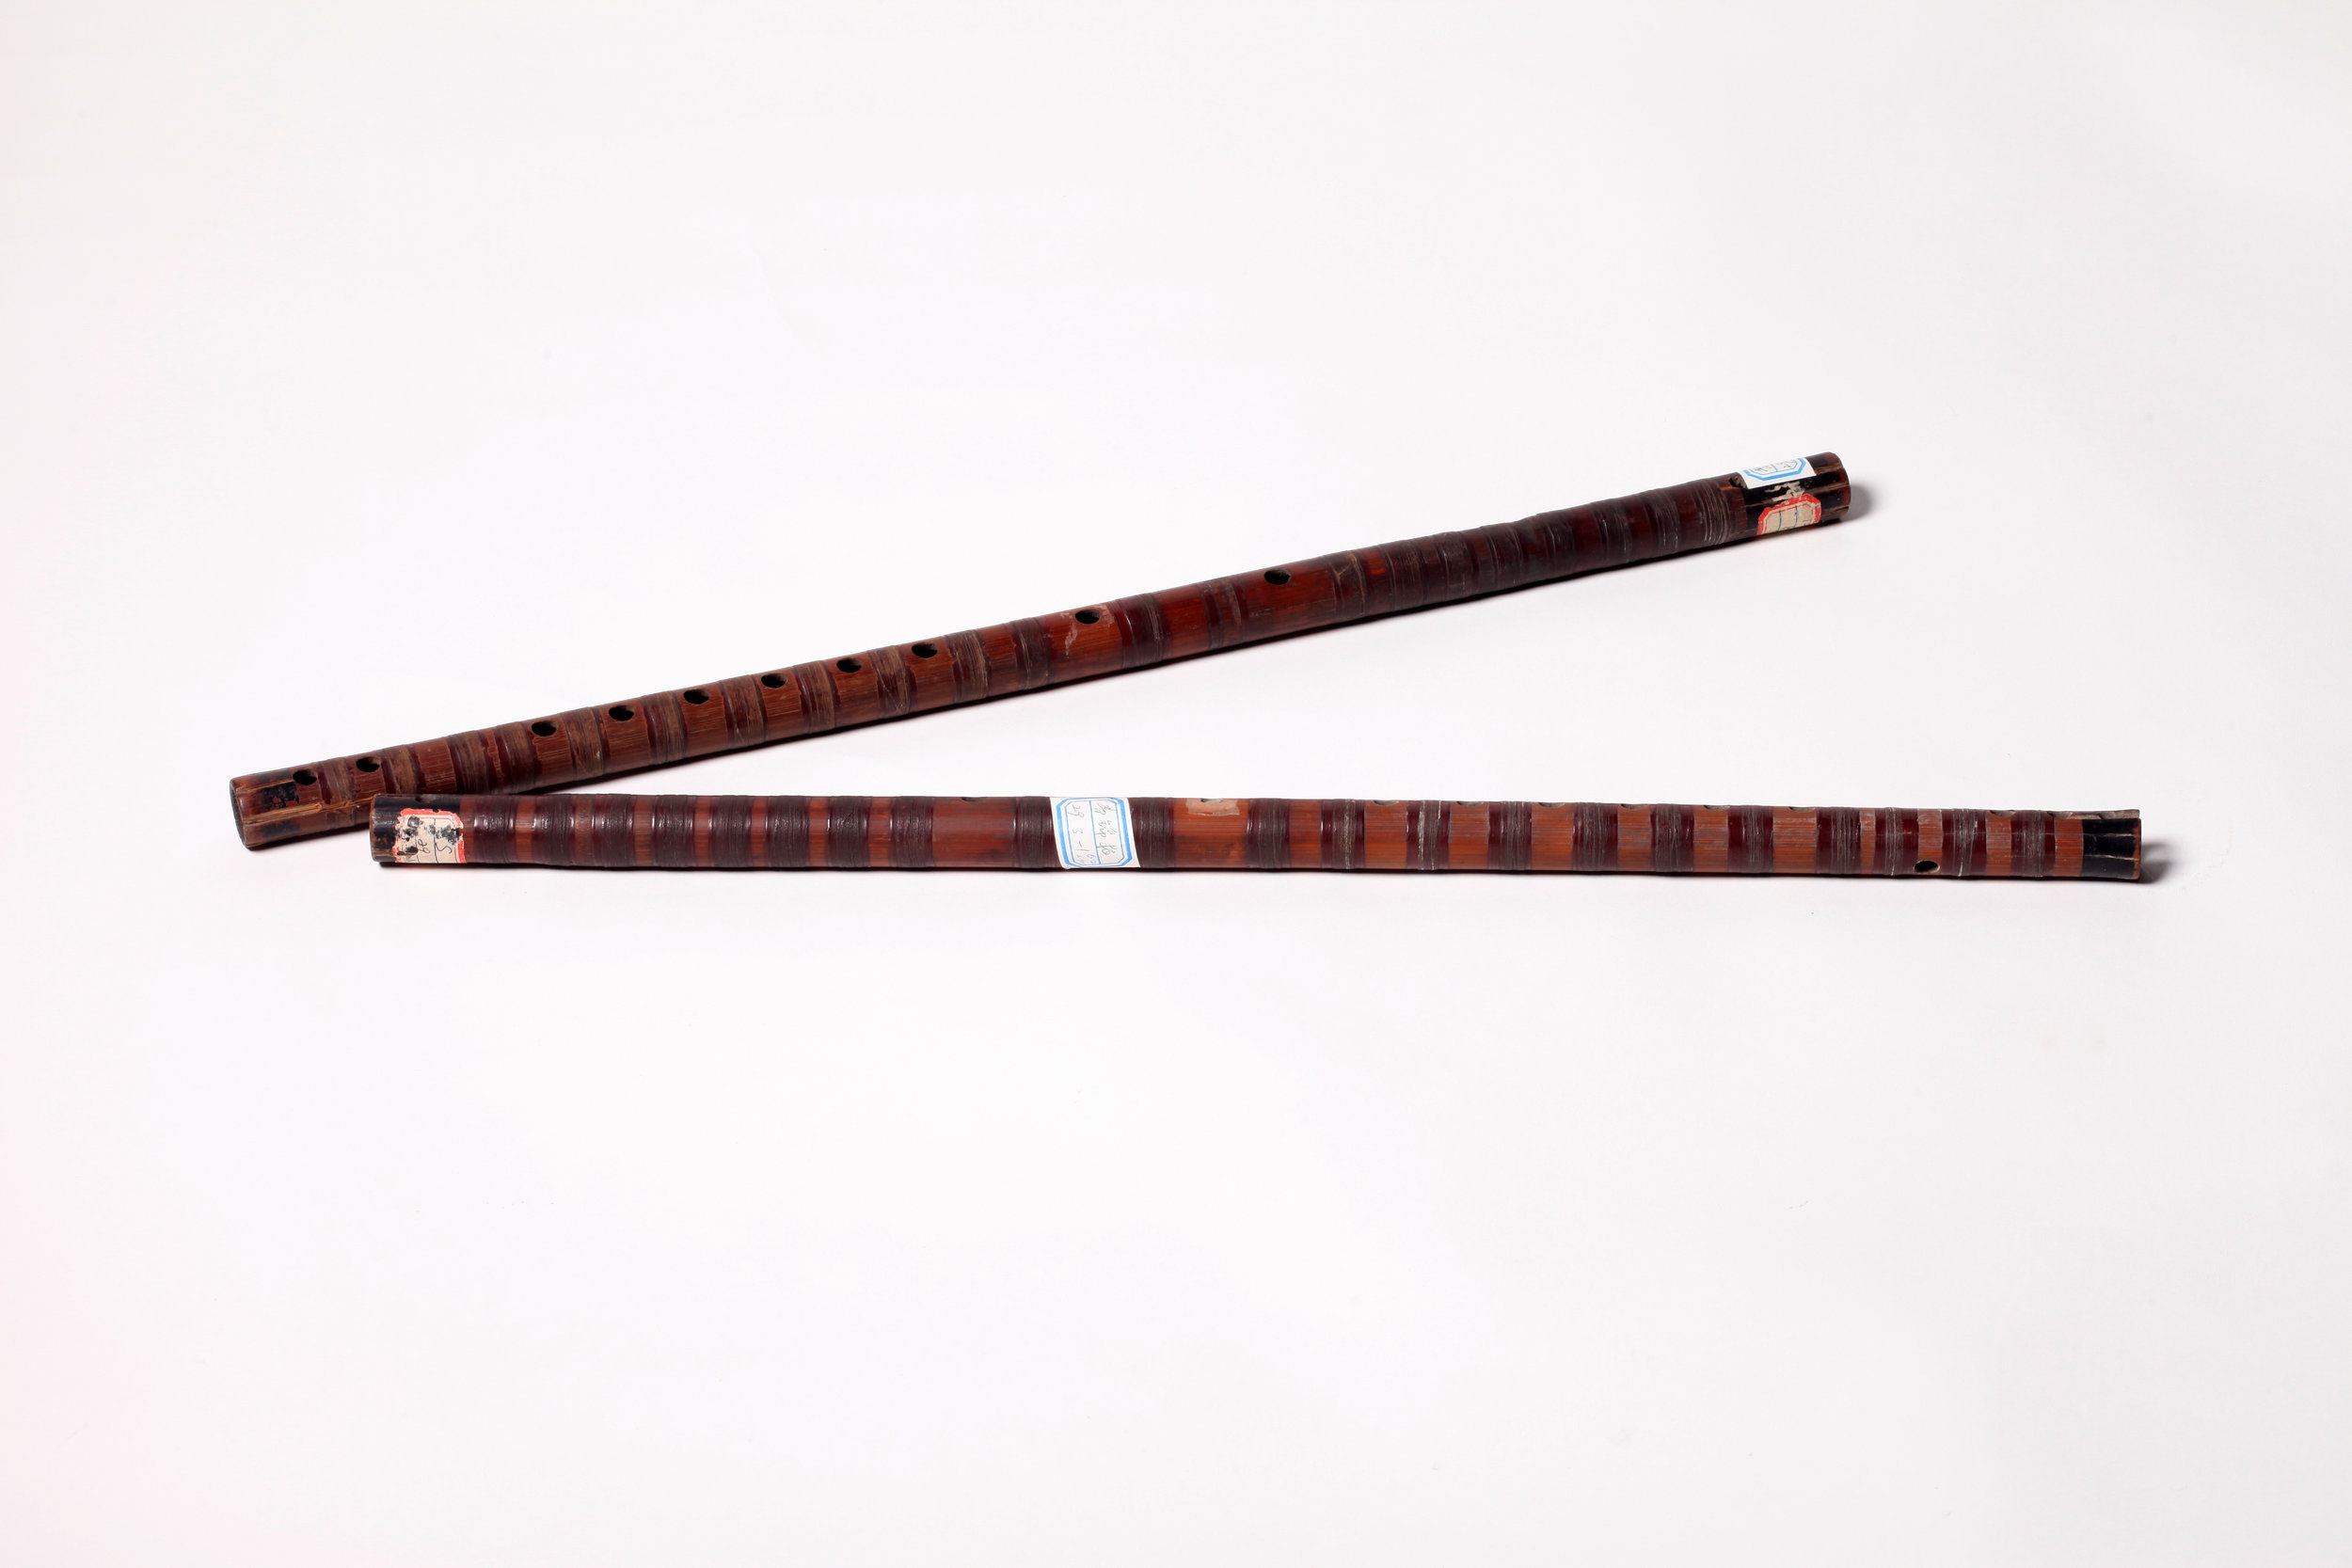 Qudi   (Sudifor)  serves as the lead instrument for accompanying in  kunqu  opera, which can be subdivided into female flute ( cidi ) and male flute ( xiongdi ). The female flute is usually played with  xiaogongdiao  (a pitch collection with its  gong —fundamental—tone corresponding to the tone produced by the  xiaogong  fingering on the  kunqu  flute for  sheng  (the main male roles) and  dan  (female roles). The male flute is a bit thicker, a half-tone lower than the range of the female one, and is played for  jing  (the painted face male roles) and  mo  (mid-and old-aged male roles). Both flutes combined can realize modulation by rolling the  gong  note .